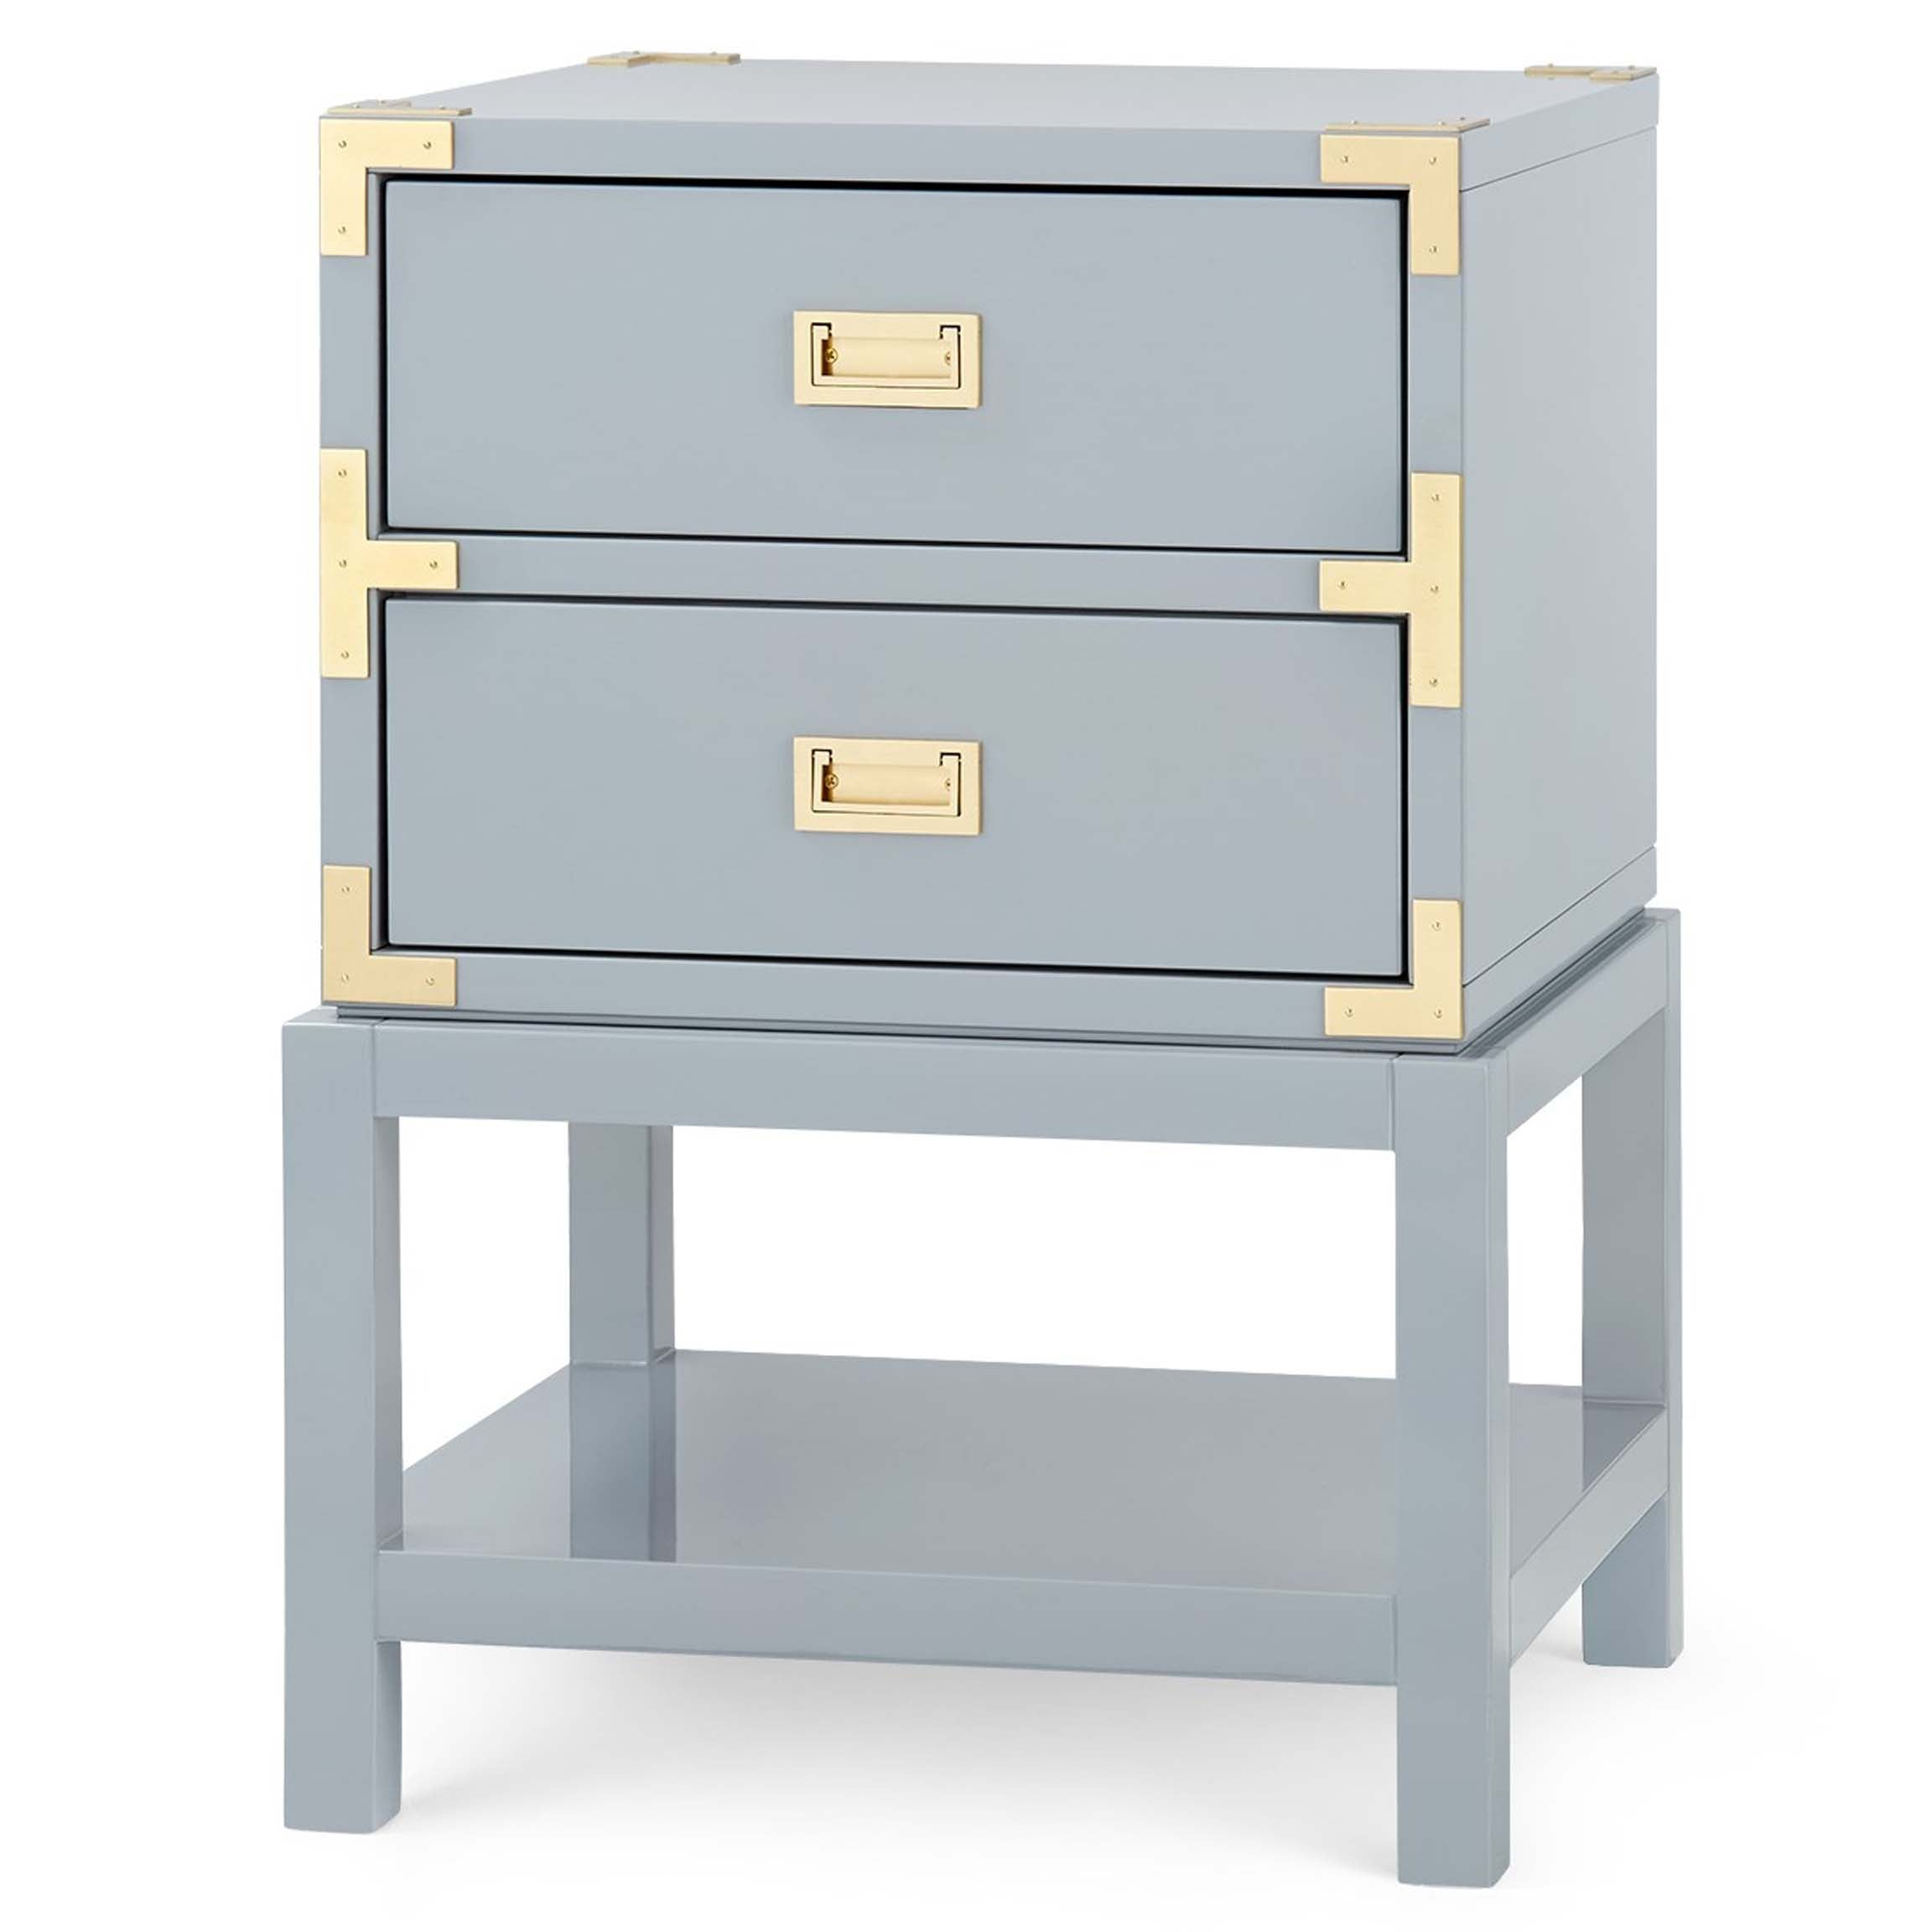 Tansu 2-Drawer Side Table in Gray